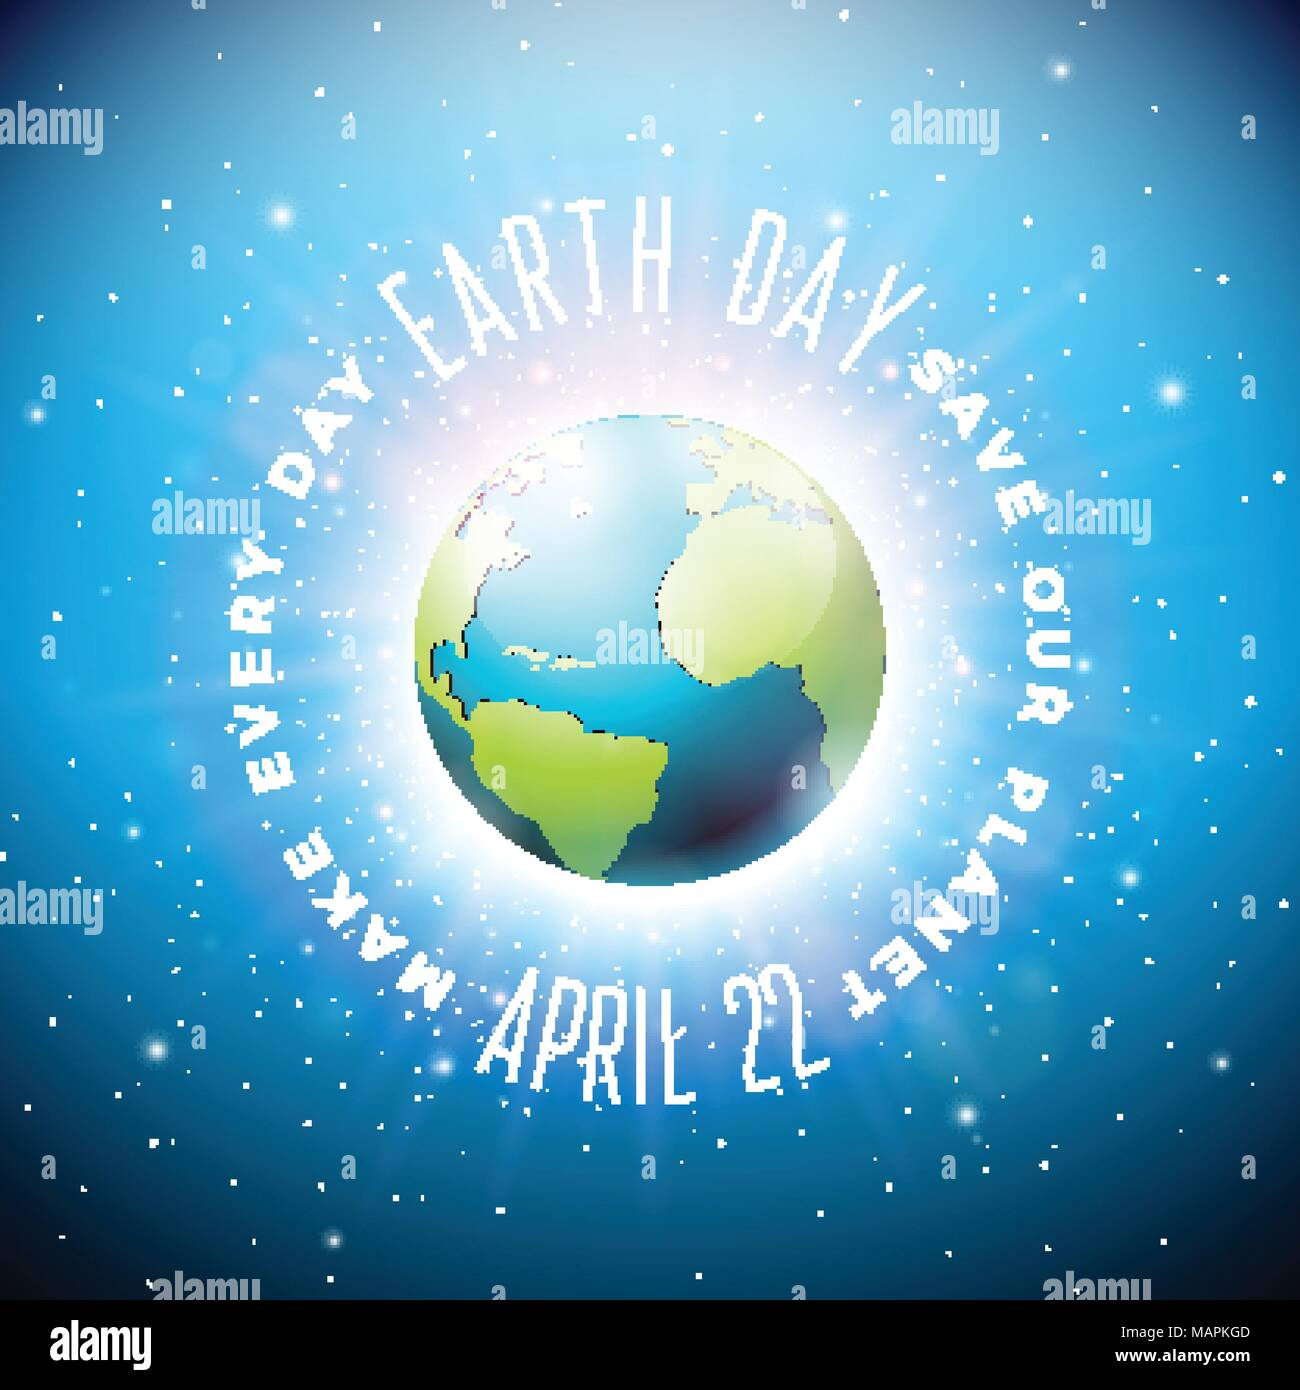 Earth Day illustration with planet and lettering. World map background on april 22 environment concept. Vector design for banner, poster or greeting card. - Stock Image